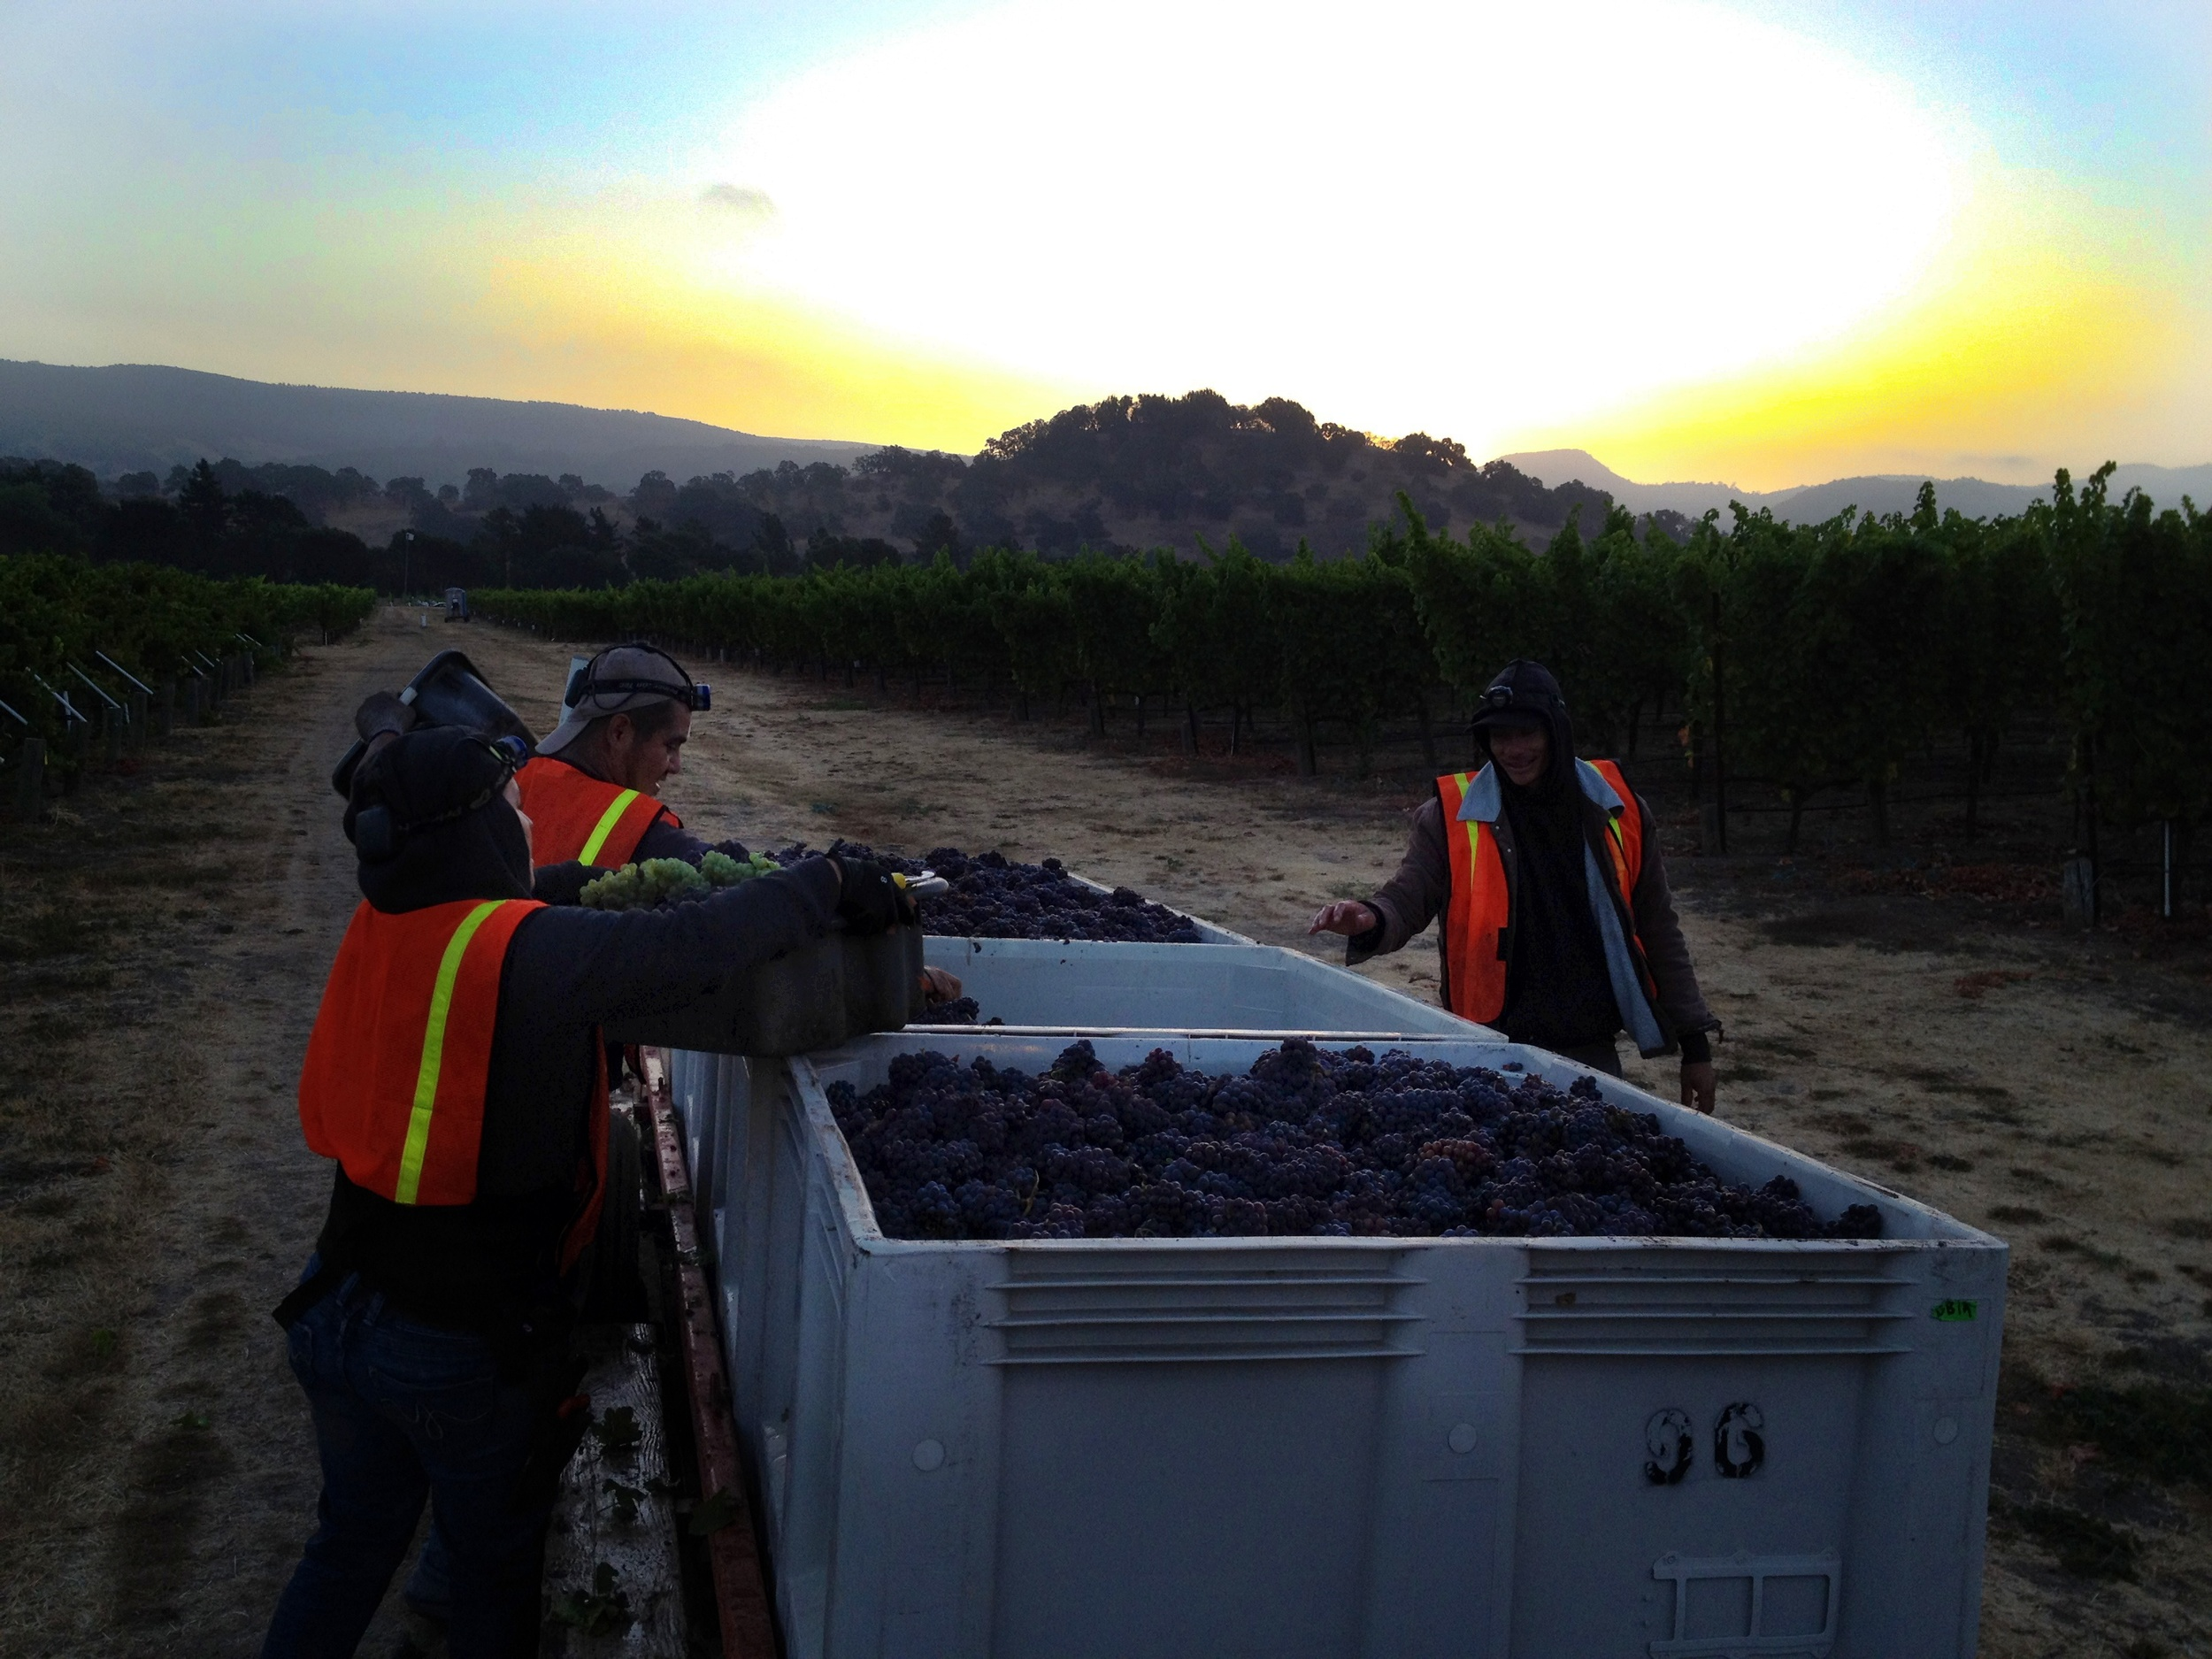 The bins are almost full of pinot gris as dawn breaks on the first day of Cornerstone Cellars harvest 2012. The vineyard is in Oakville just north of Silver Oak.